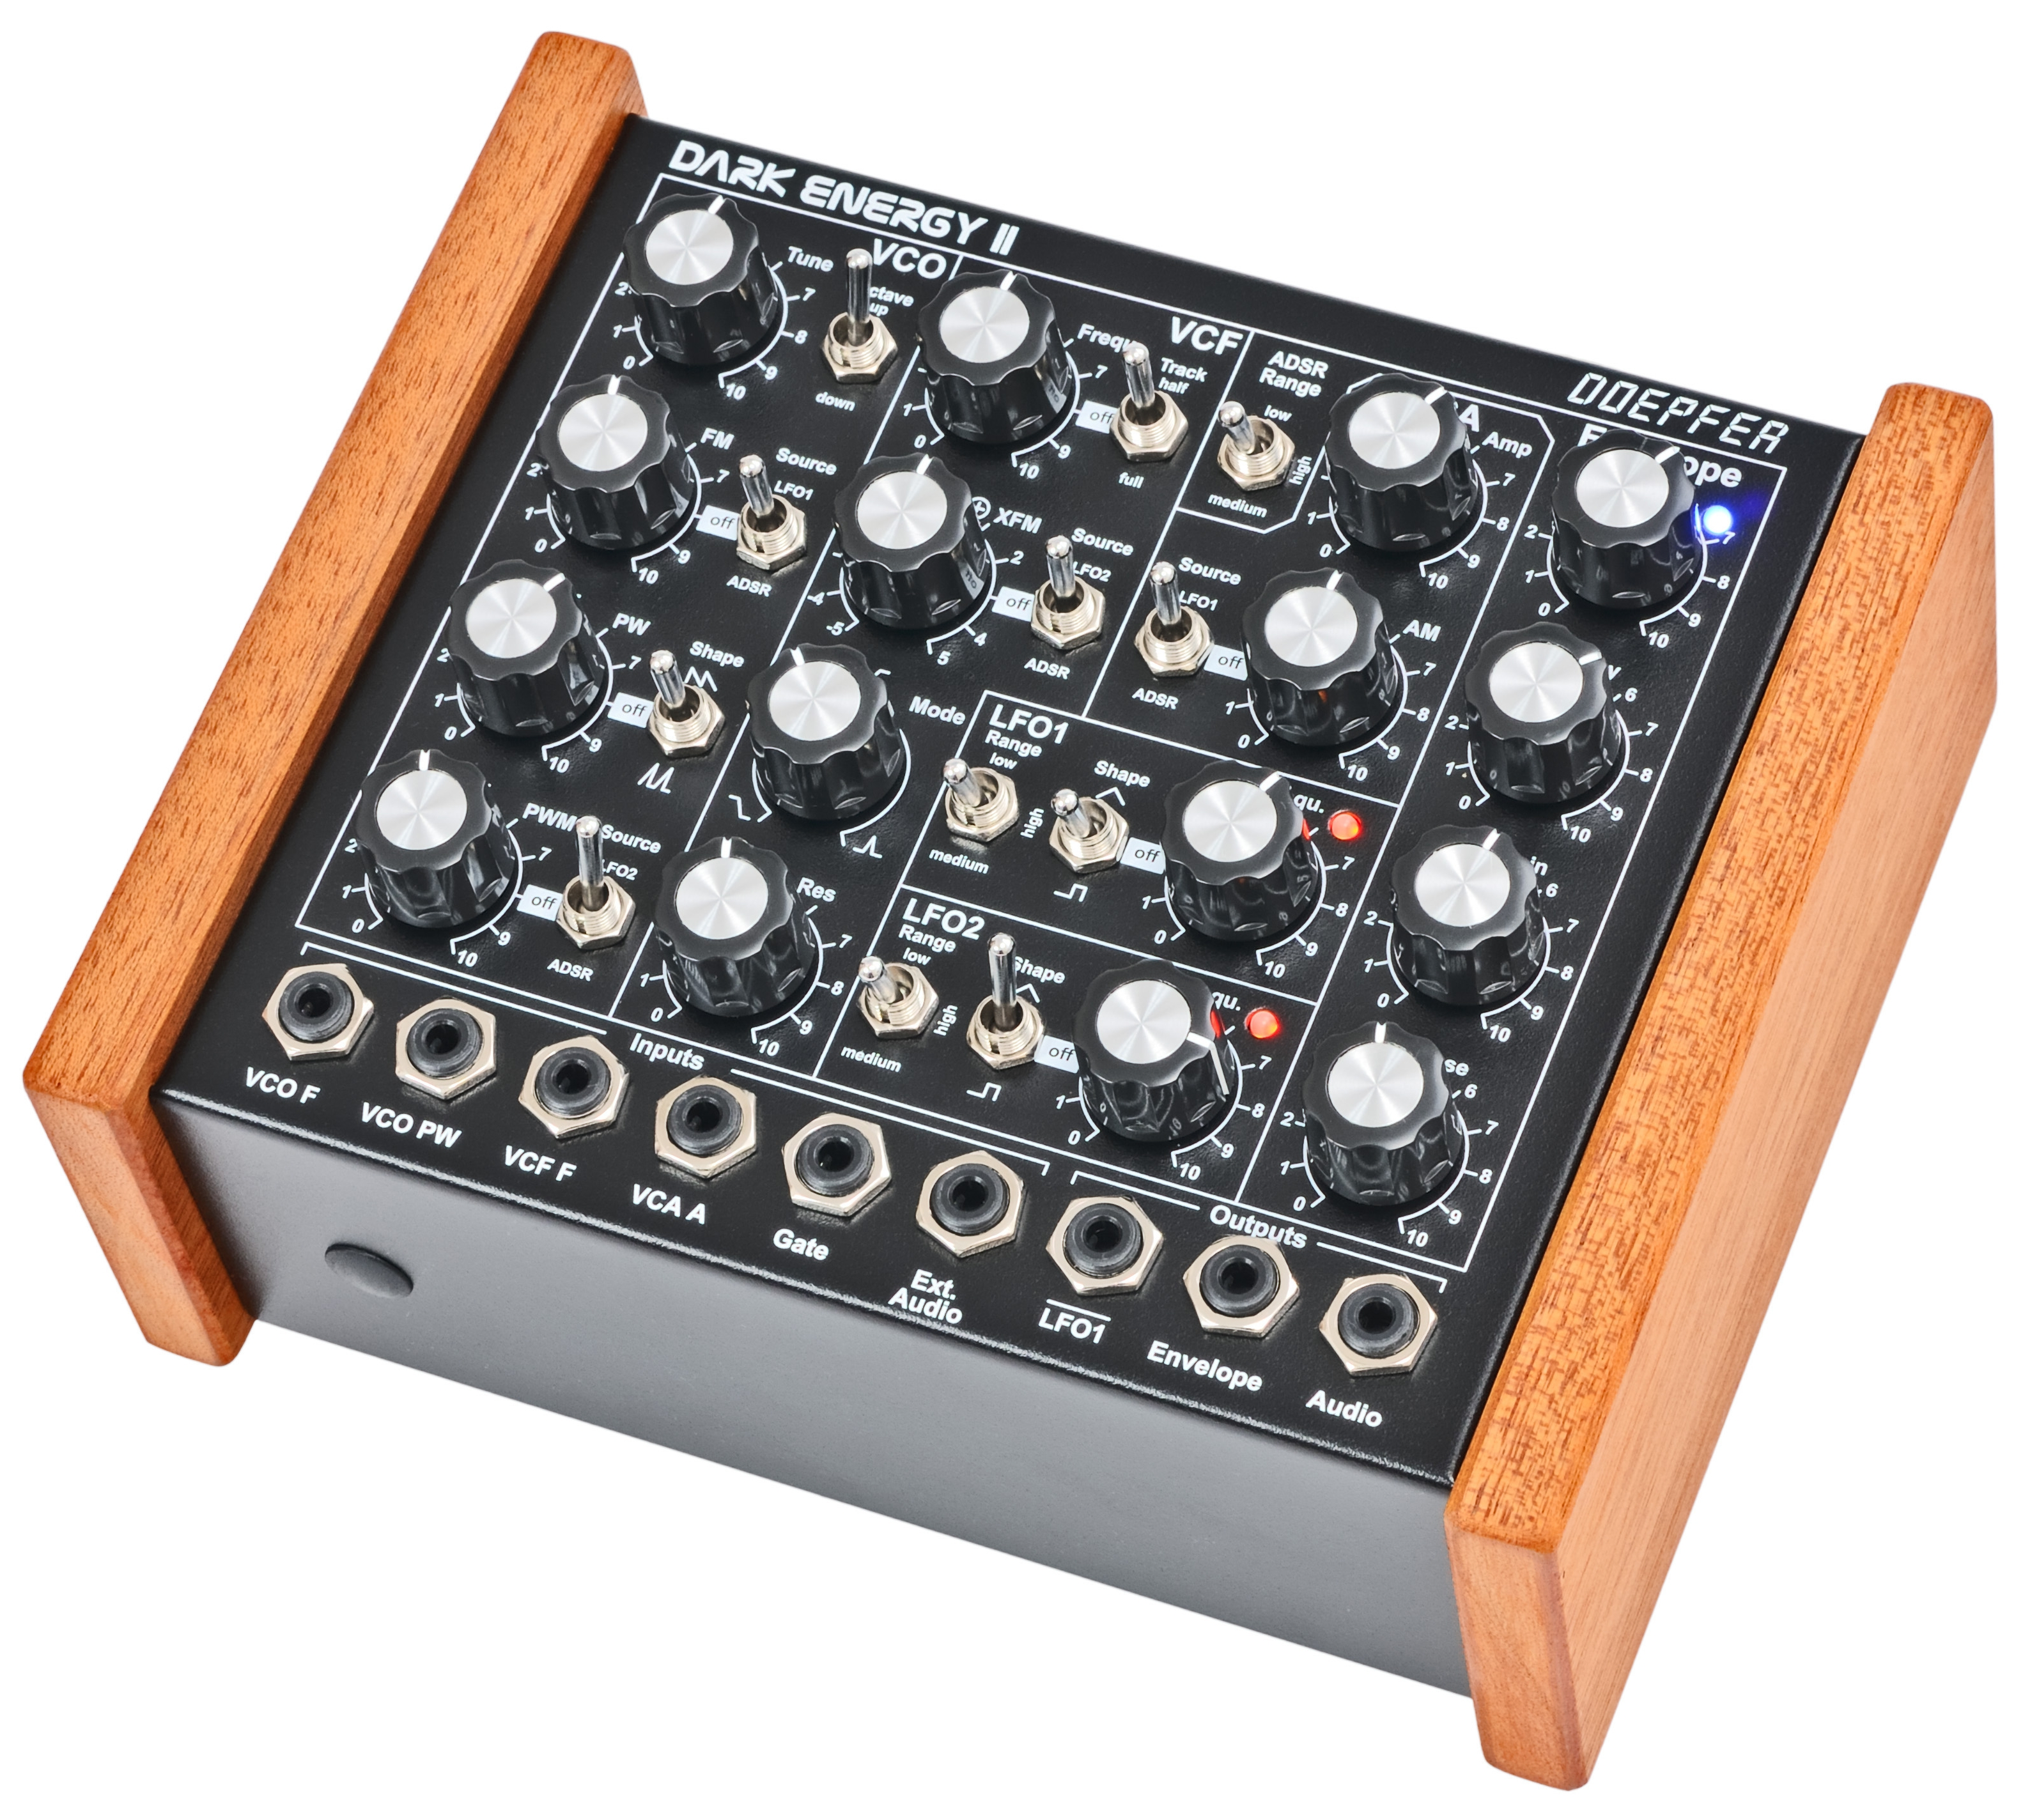 Dark Energy Ii Circuit Diaghram Of Low Frequency Synthesizer Frequently Asked Questions Faq About